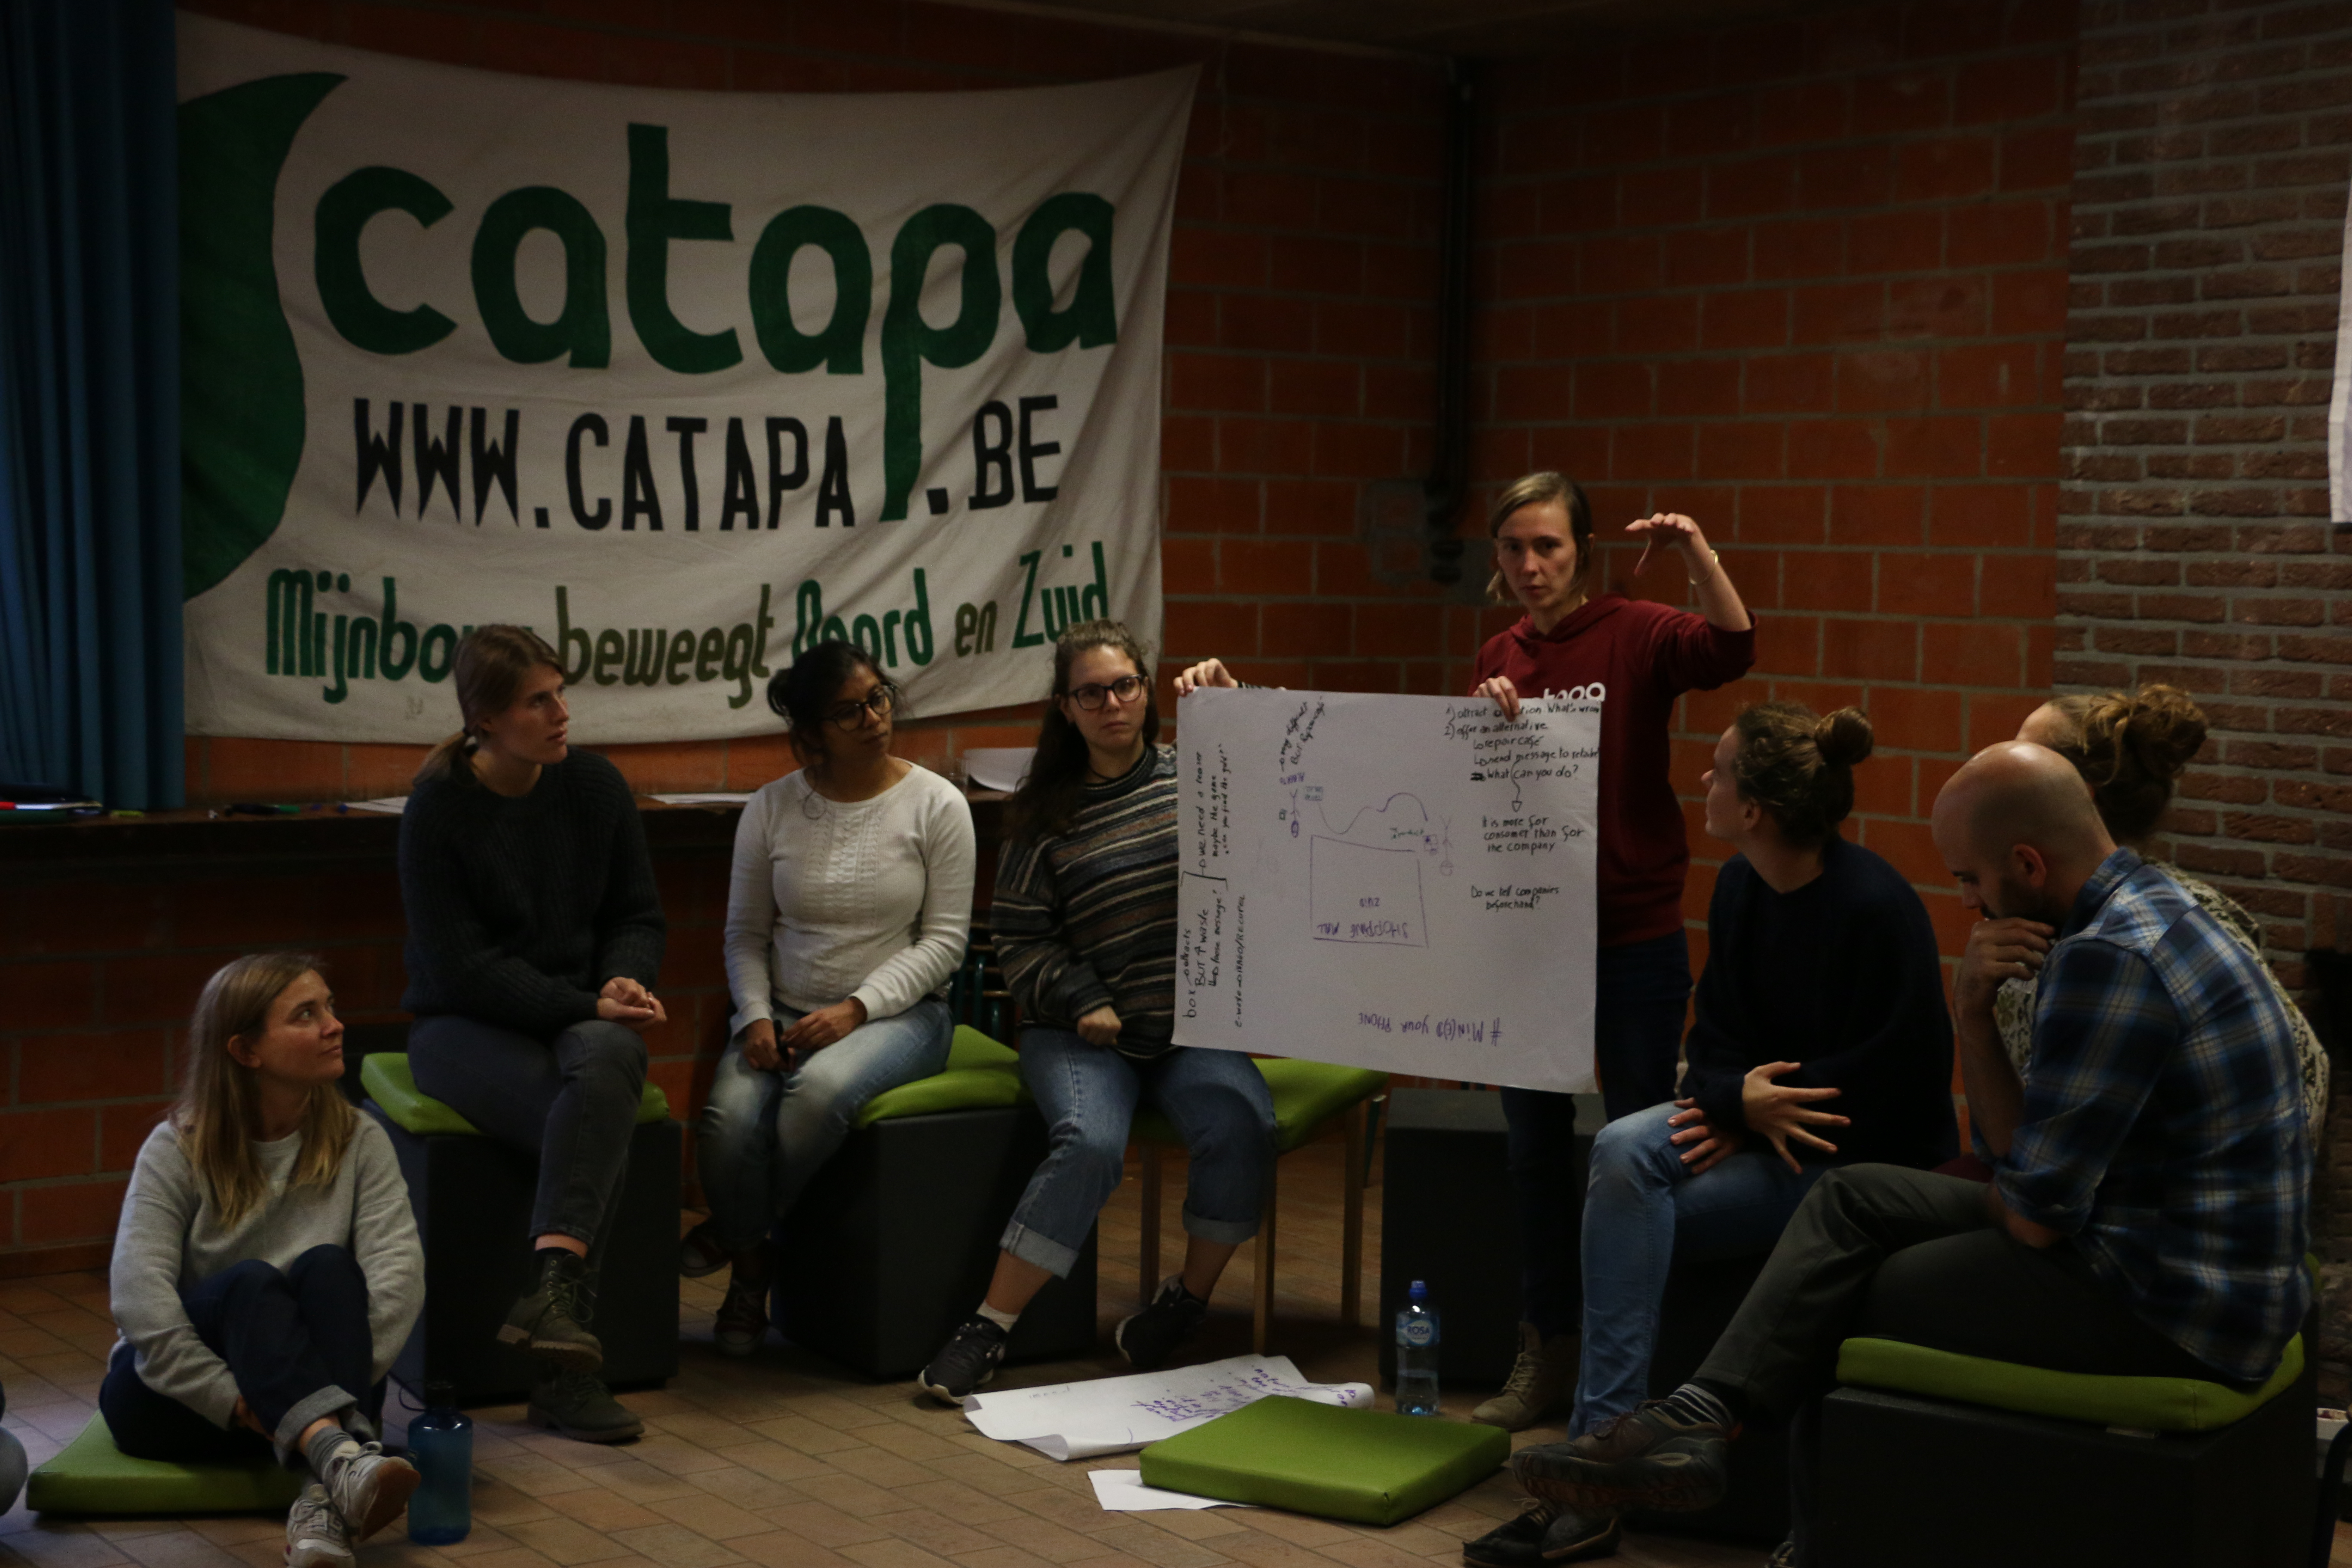 CATAPA training